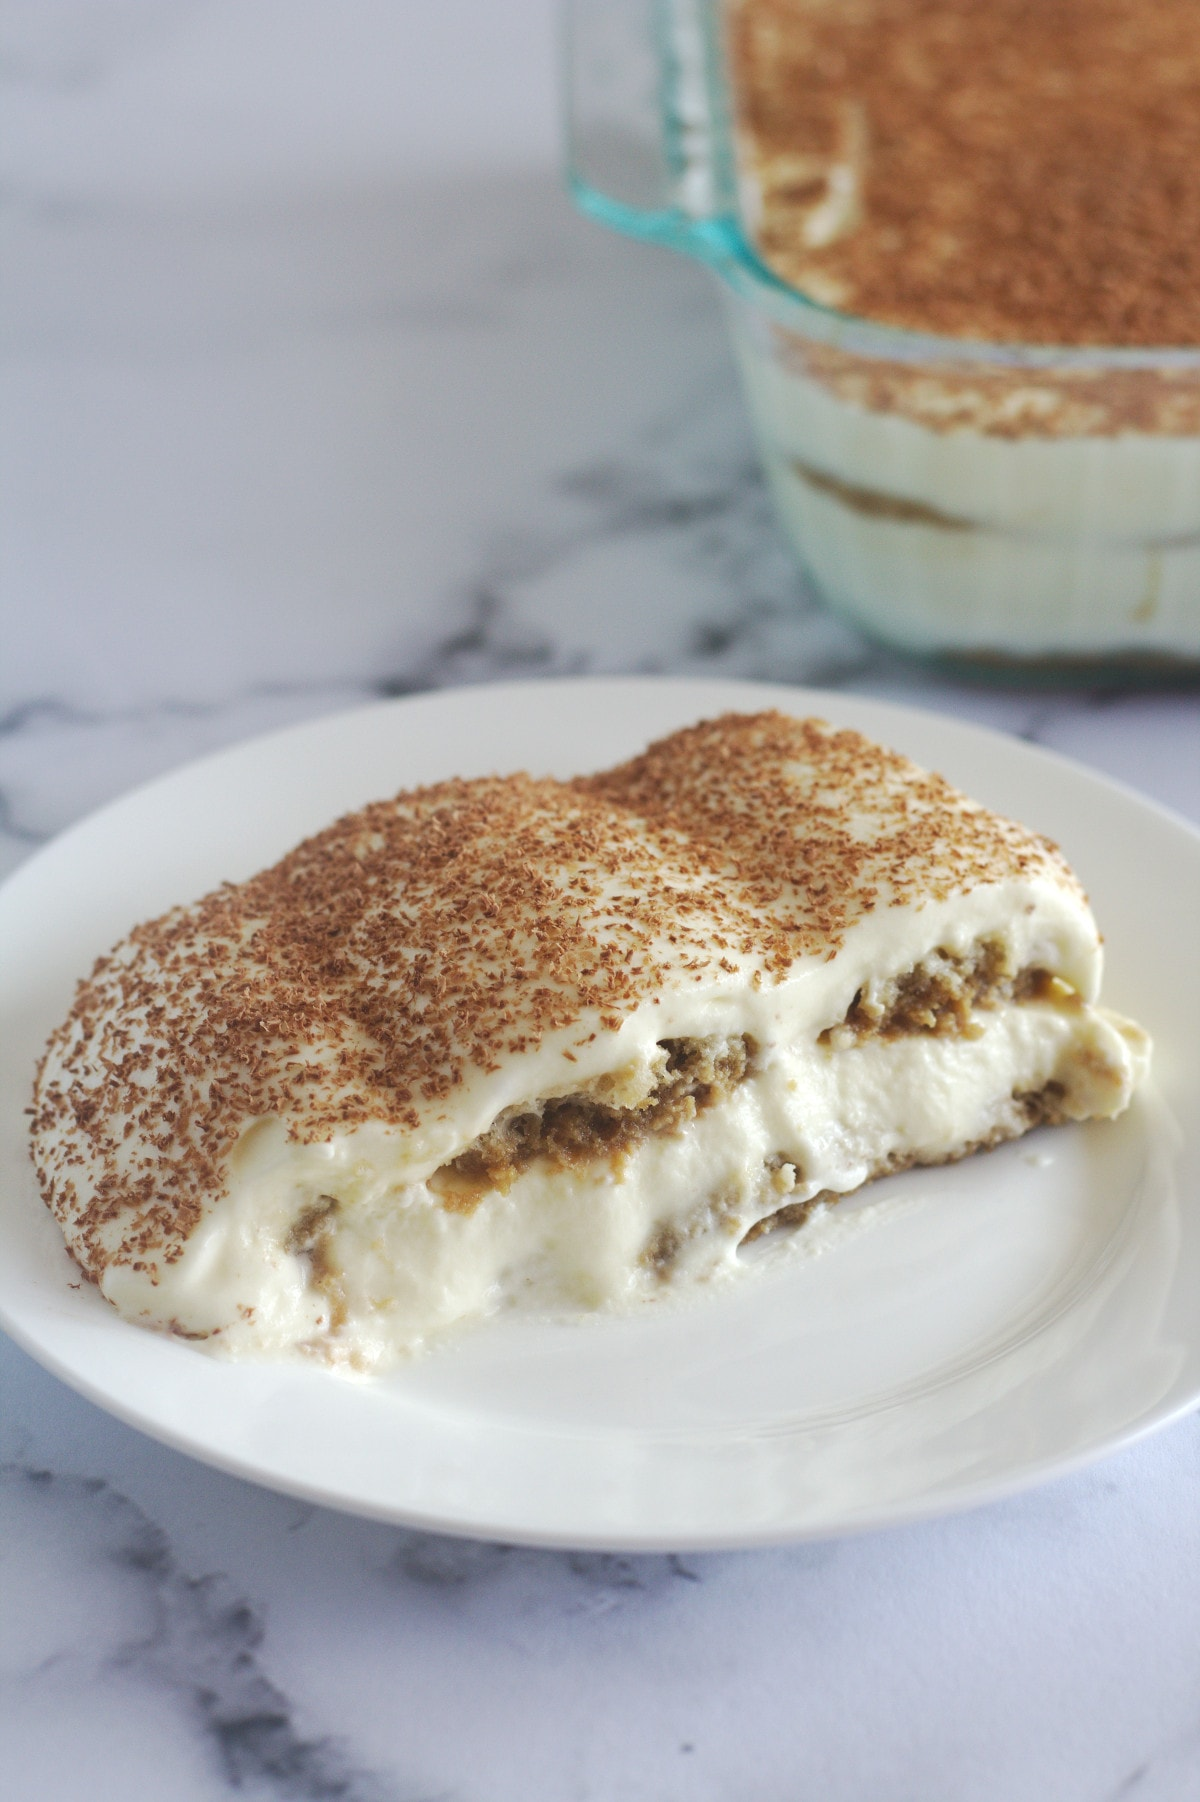 Tiramisu on a white plate with the rest of the cake in the background.